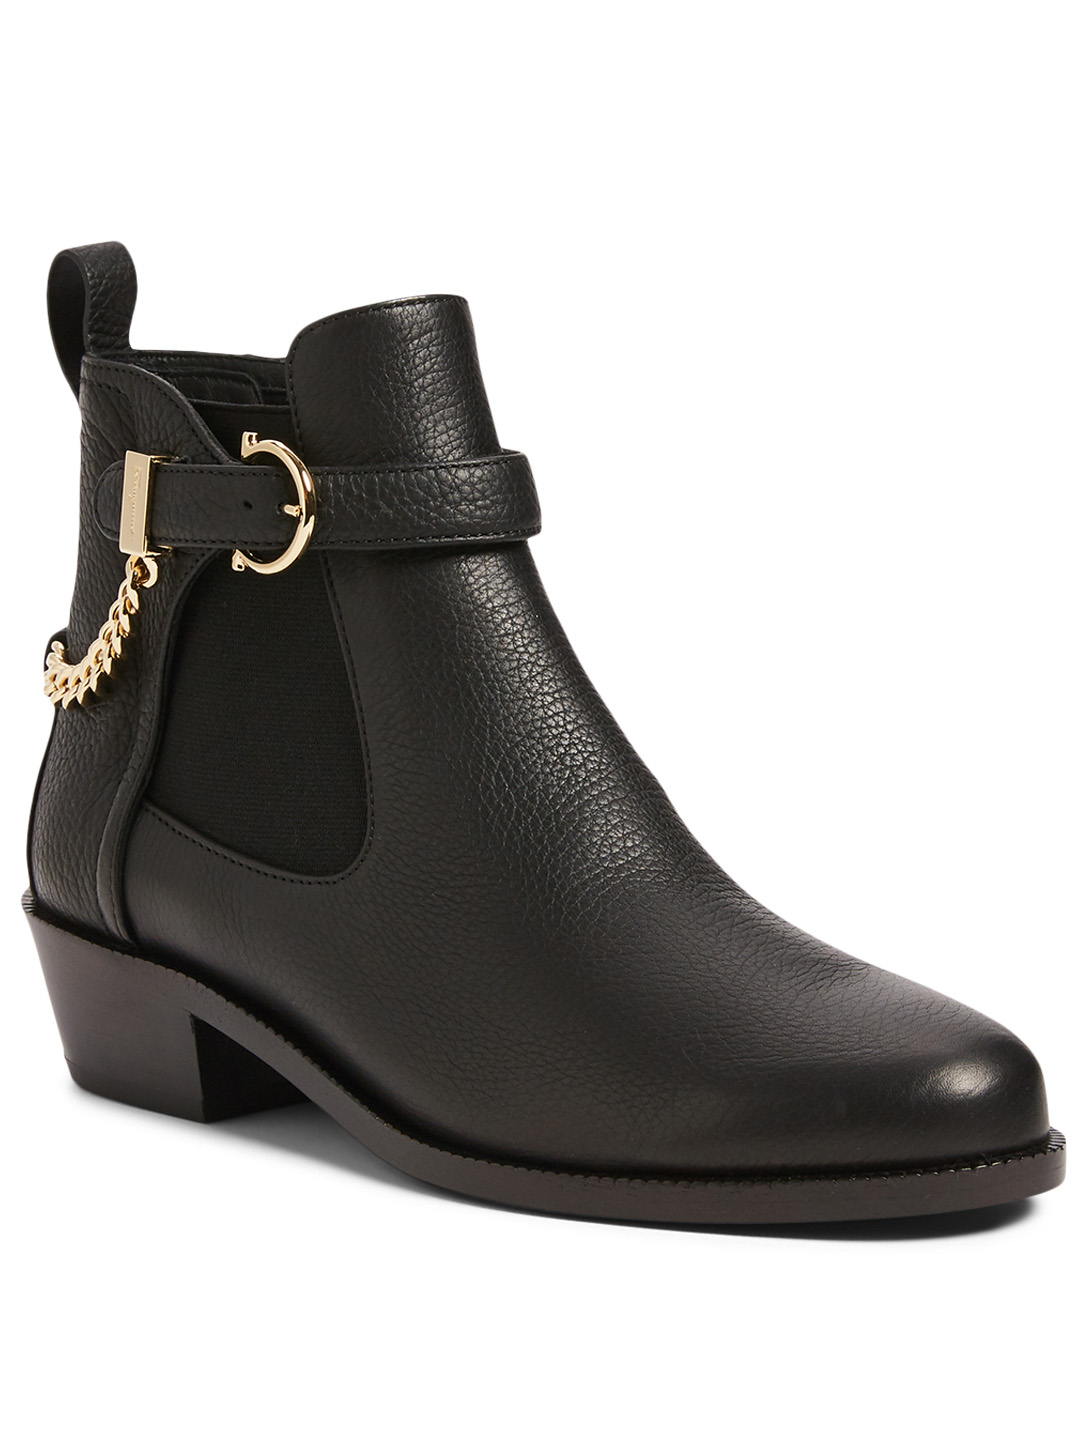 SALVATORE FERRAGAMO Ardisie Leather Ankle Boots With Chain Women's Black